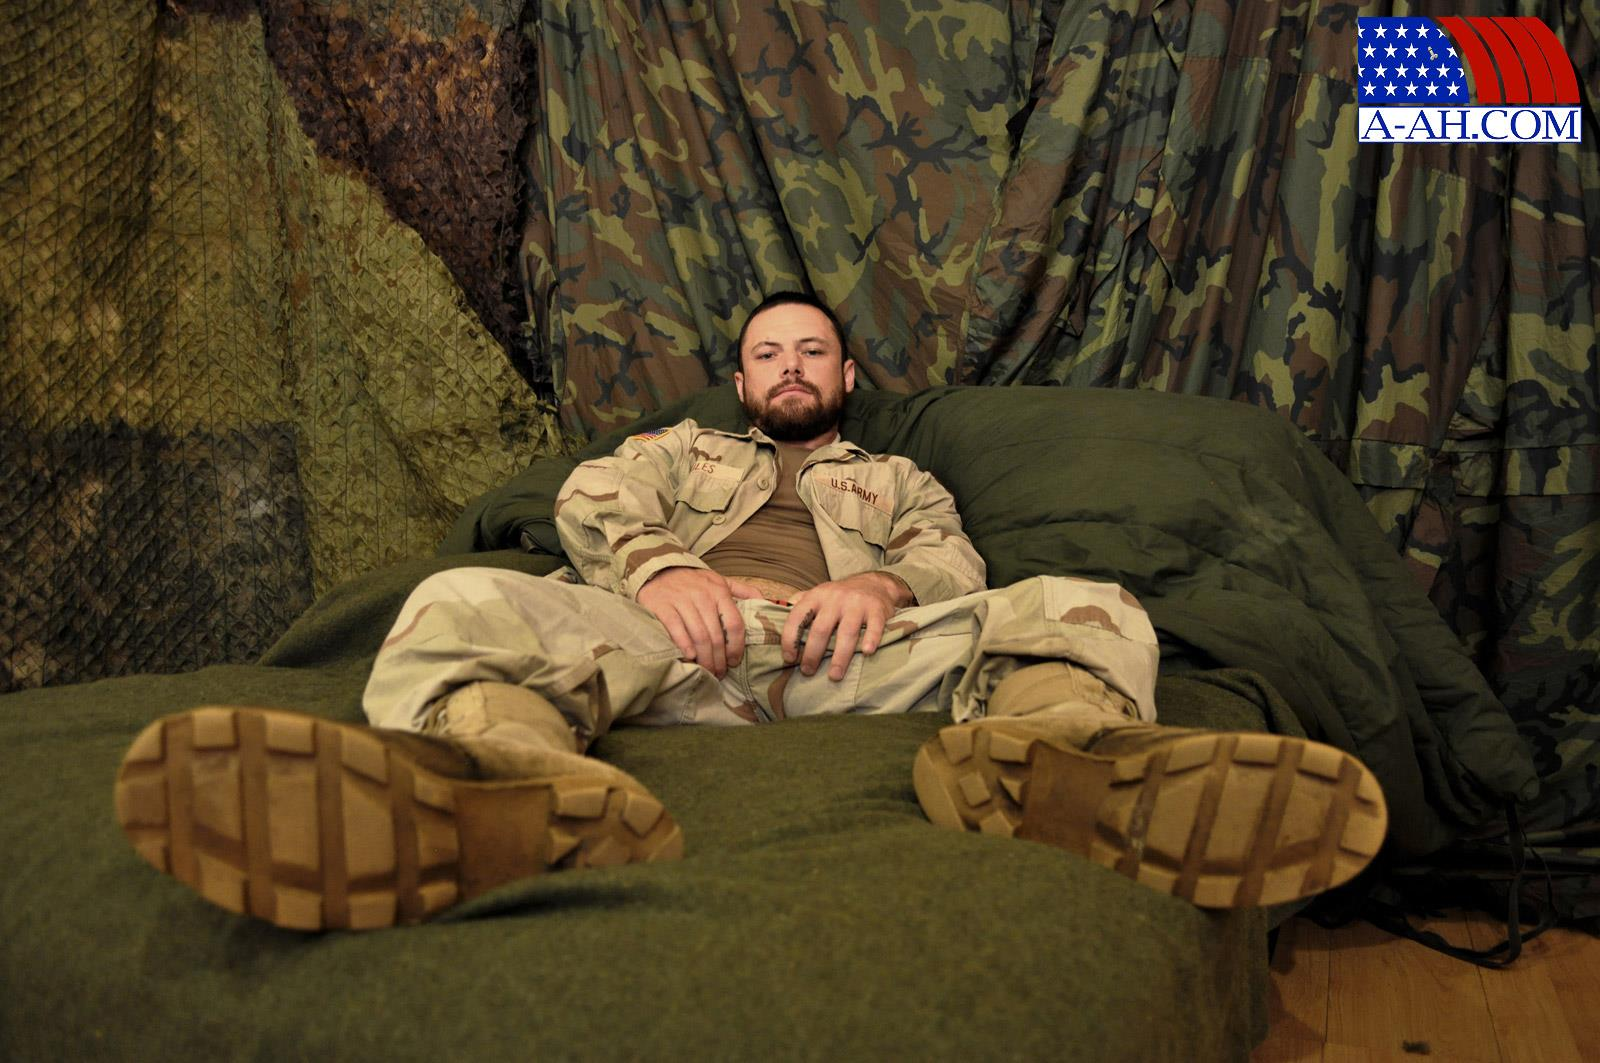 All-American-Heroes-Sergeant-Miles-Army-Guy-Jerking-Off-Big-Cock-And-Fingering-Ass-Amateur-Gay-Porn-01 Happy Veterans Day: Straight US Army Sergeant Jerks His Thick Cock